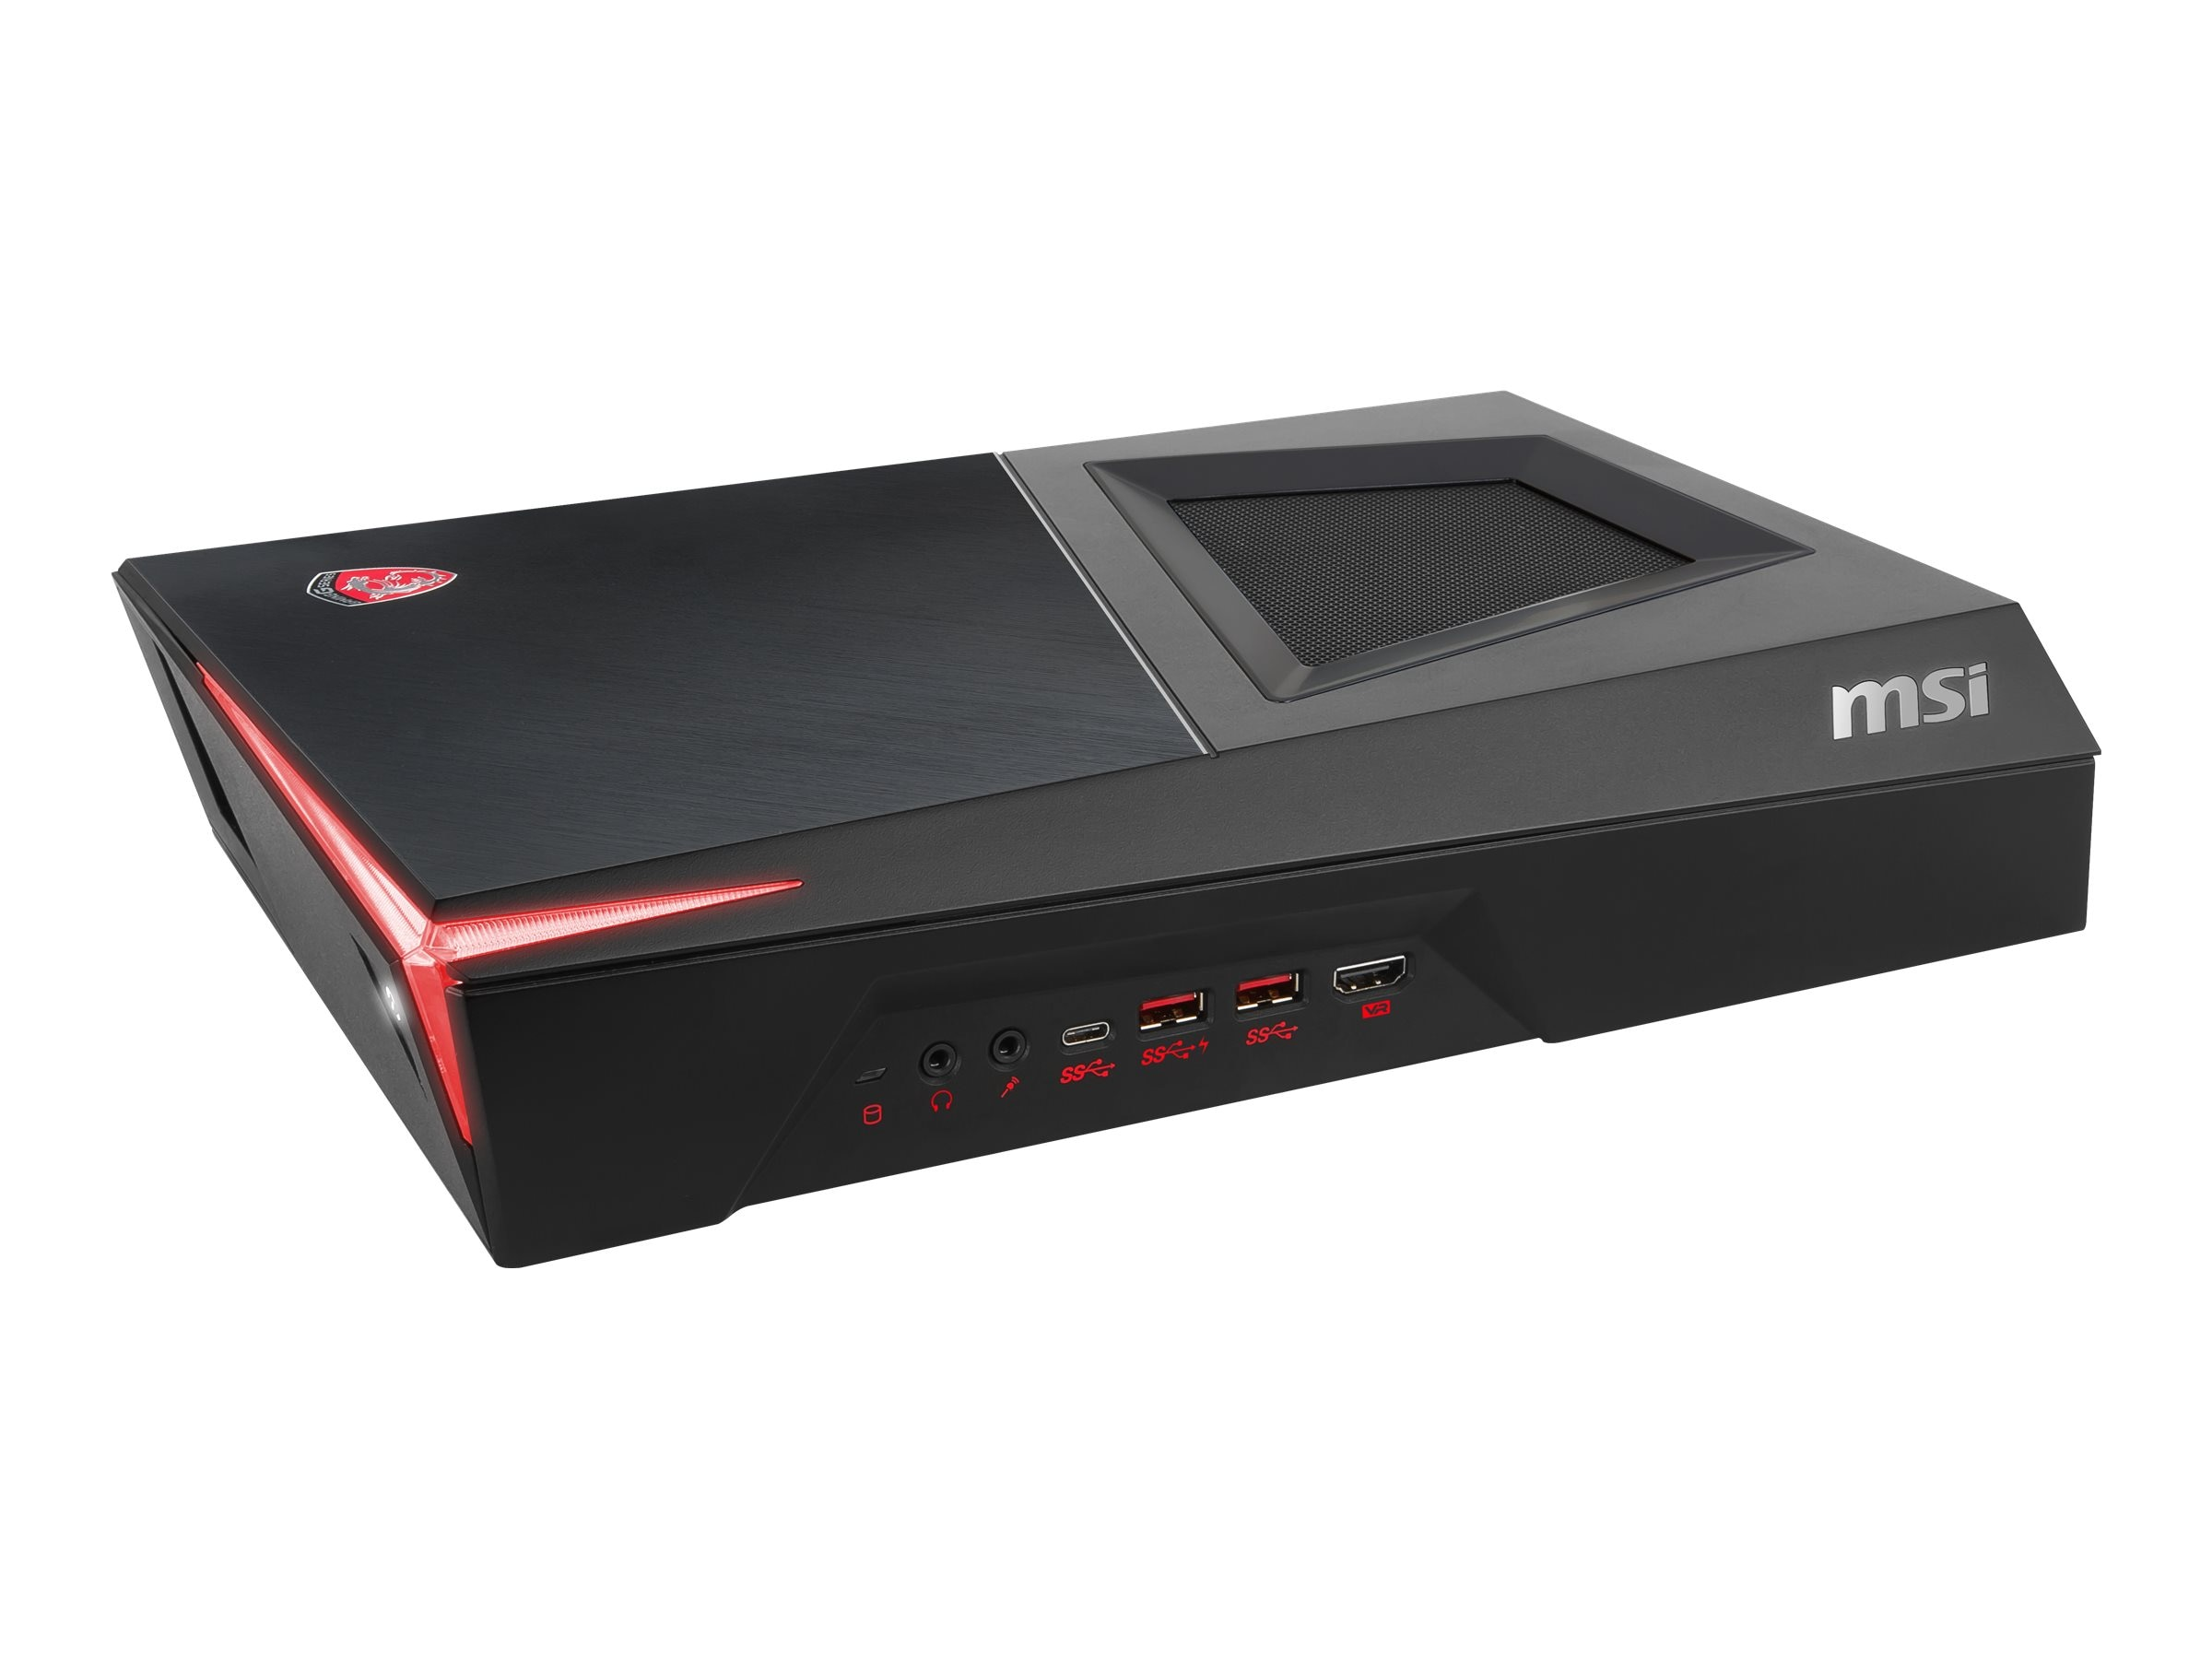 MSI Computer TRIDENT008US Image 6